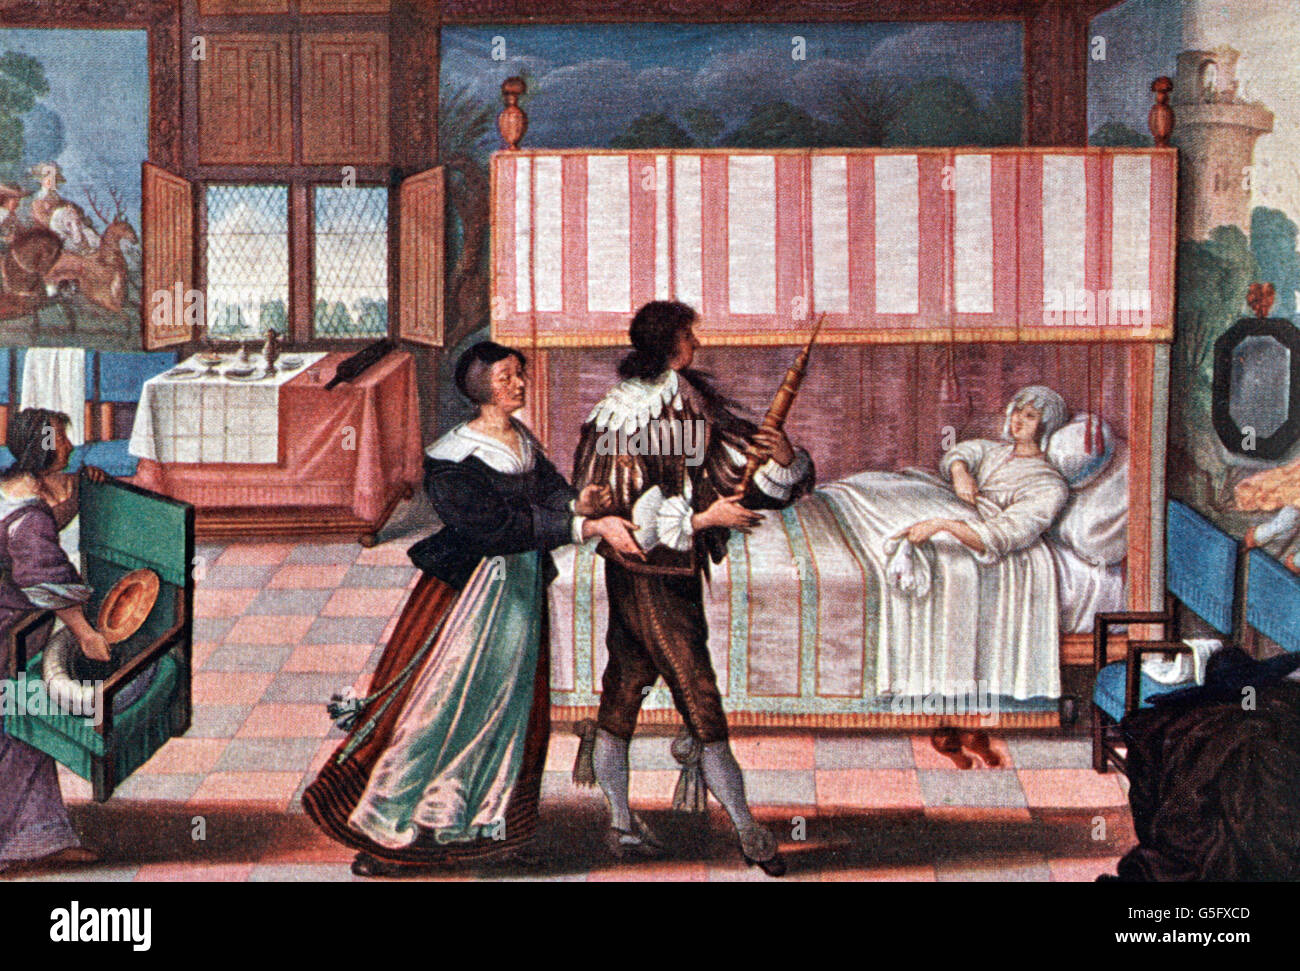 medicine, treatment, examination / therapy / consultation, apothecary with enema at sick-bed, miniature by Abraham Stock Photo